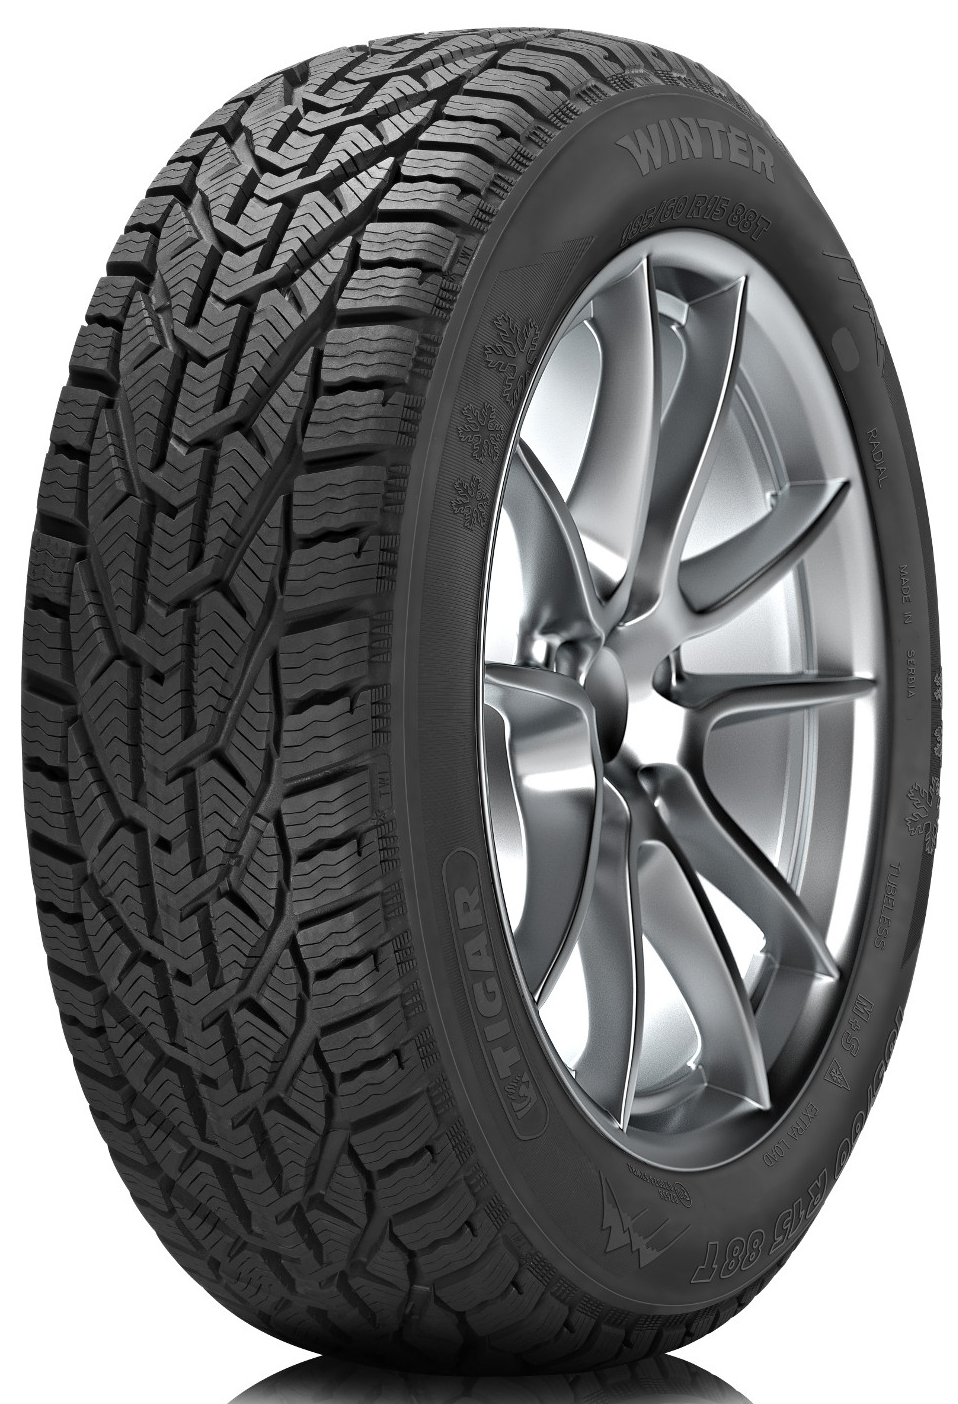 Зимняя шина Tigar Winter 215/40 R17 87V XL